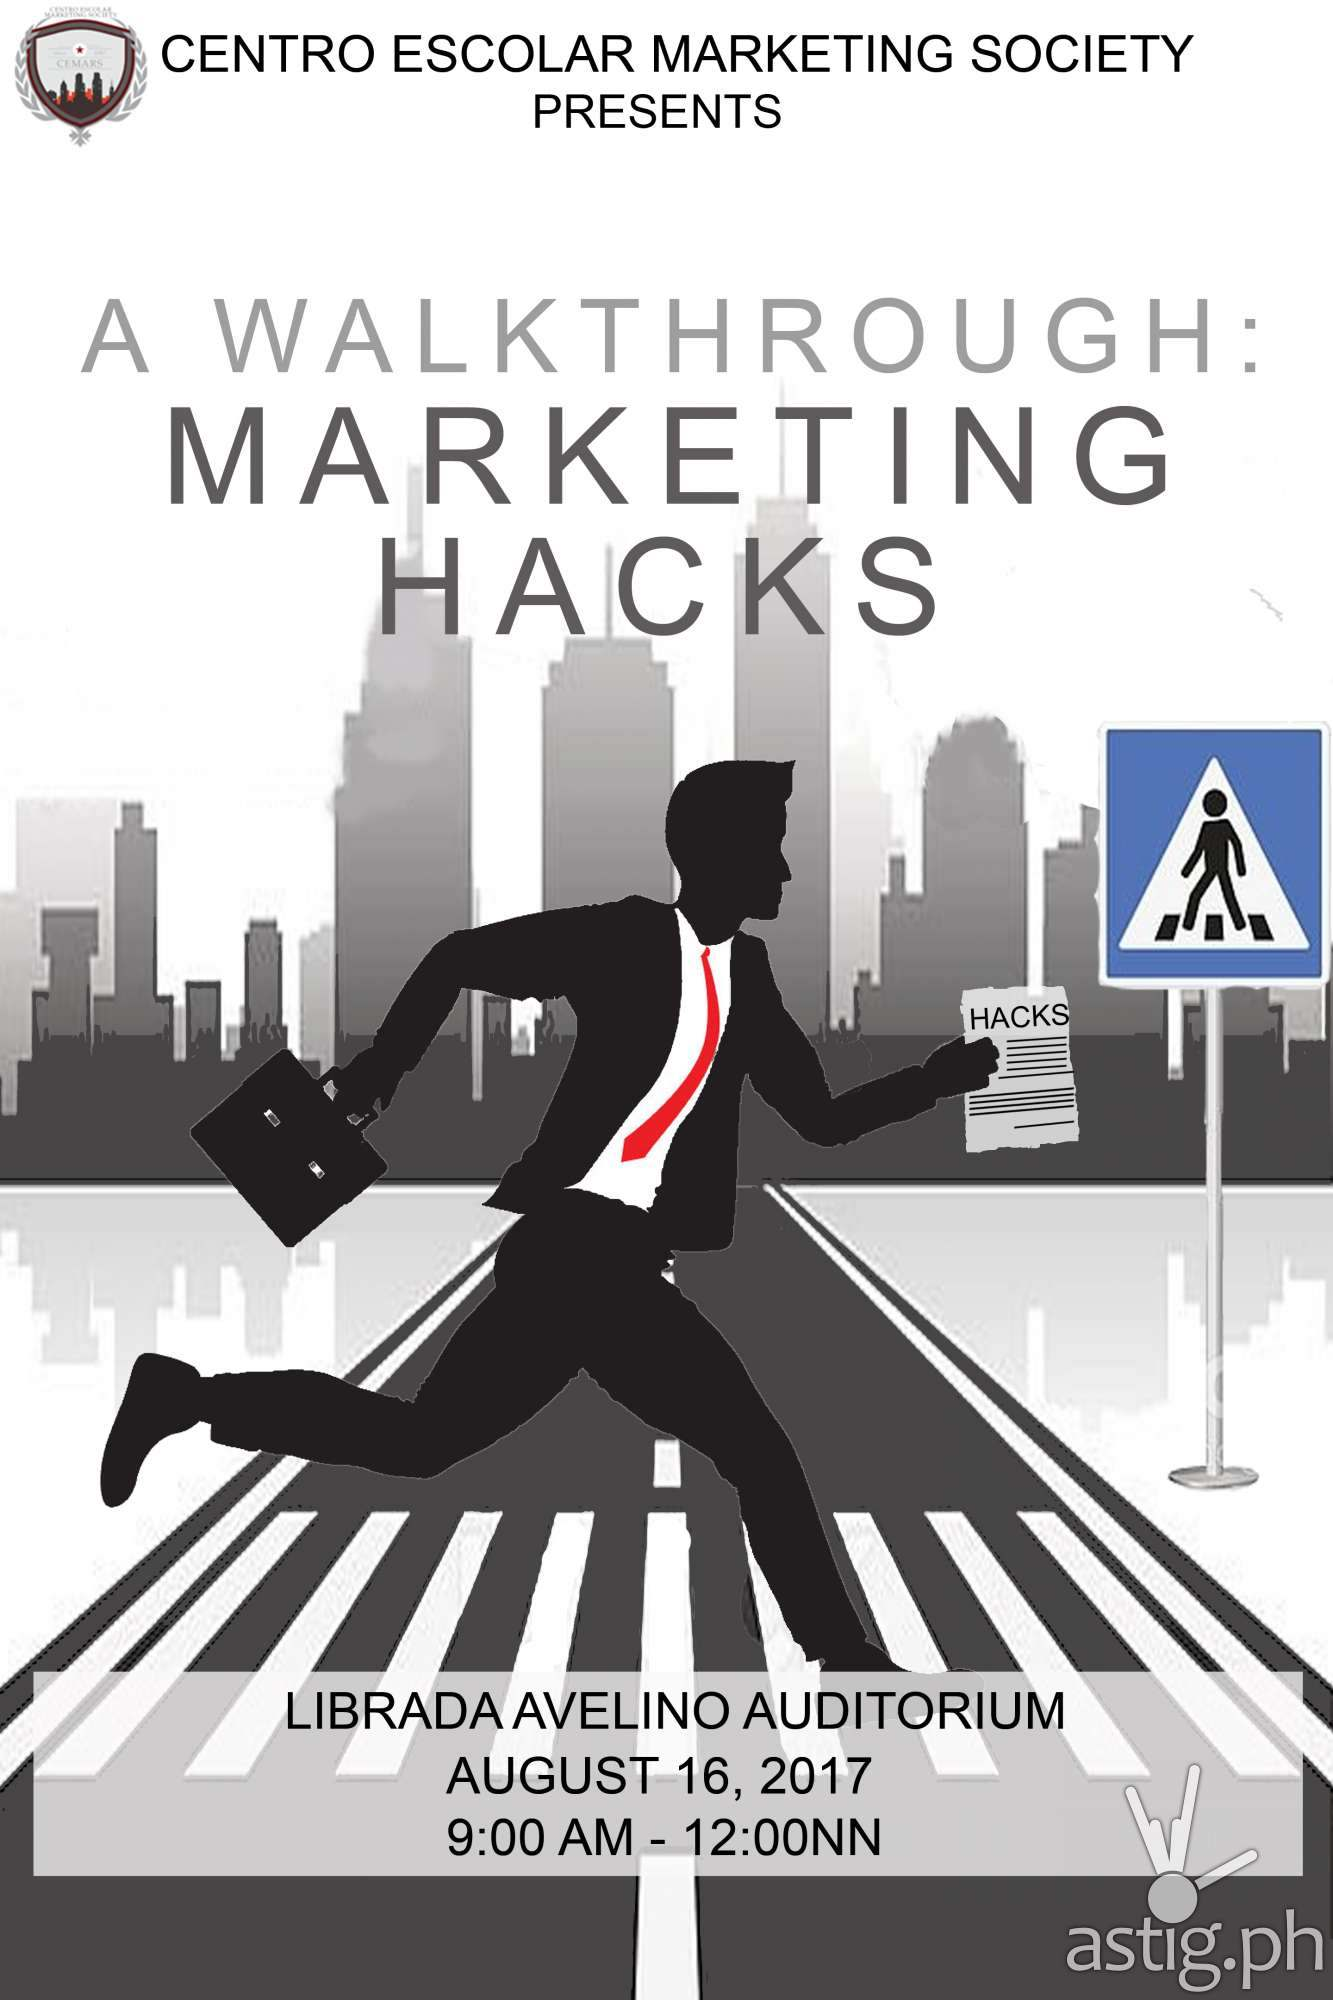 A Walkthrough Marketing Hacks CEU poster